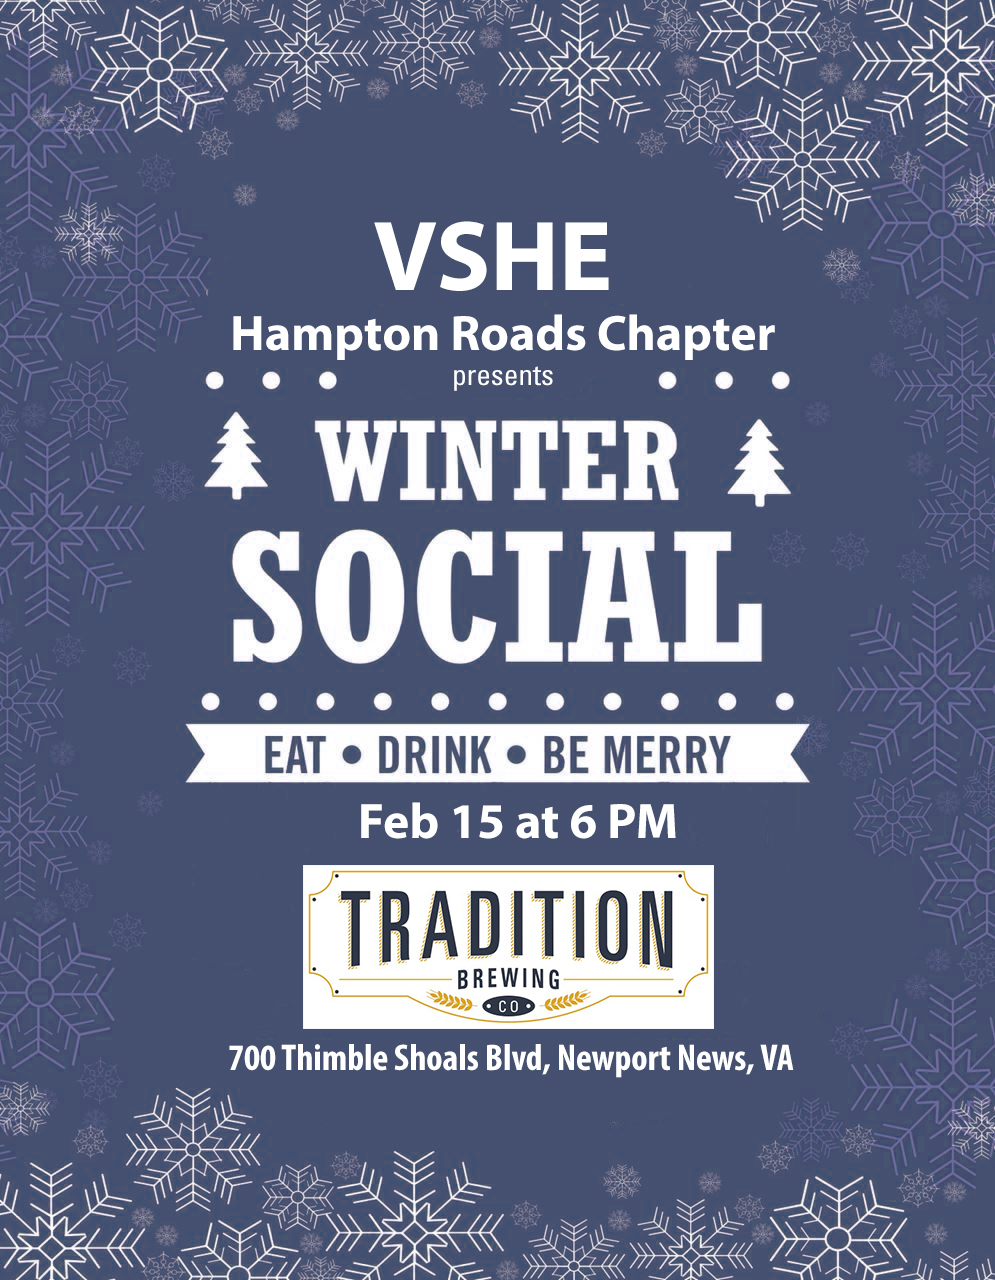 VSHE Winter Social Flyer